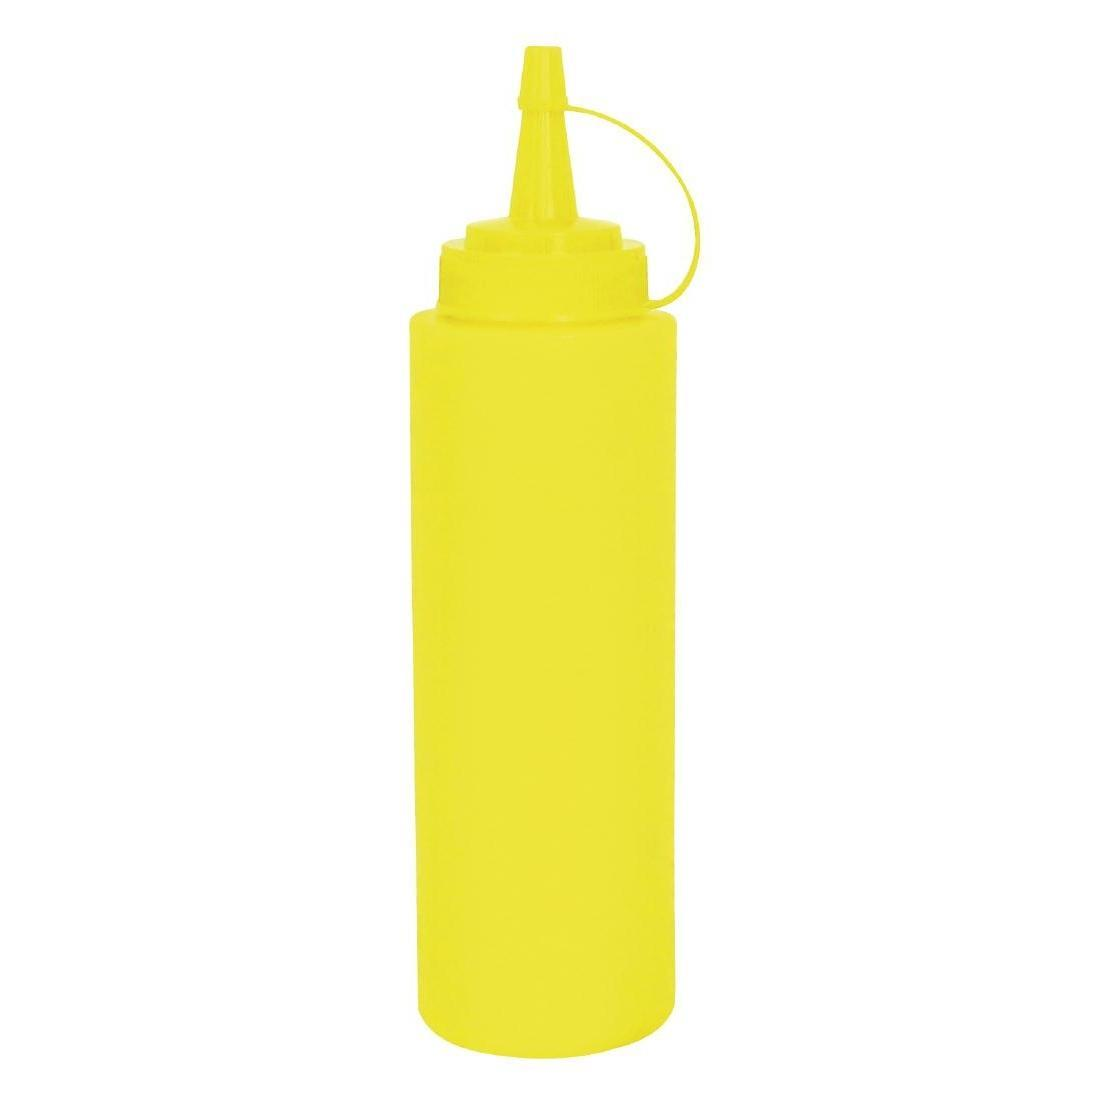 Vogue Yellow Squeeze Sauce Bottle 24oz - Each - K158